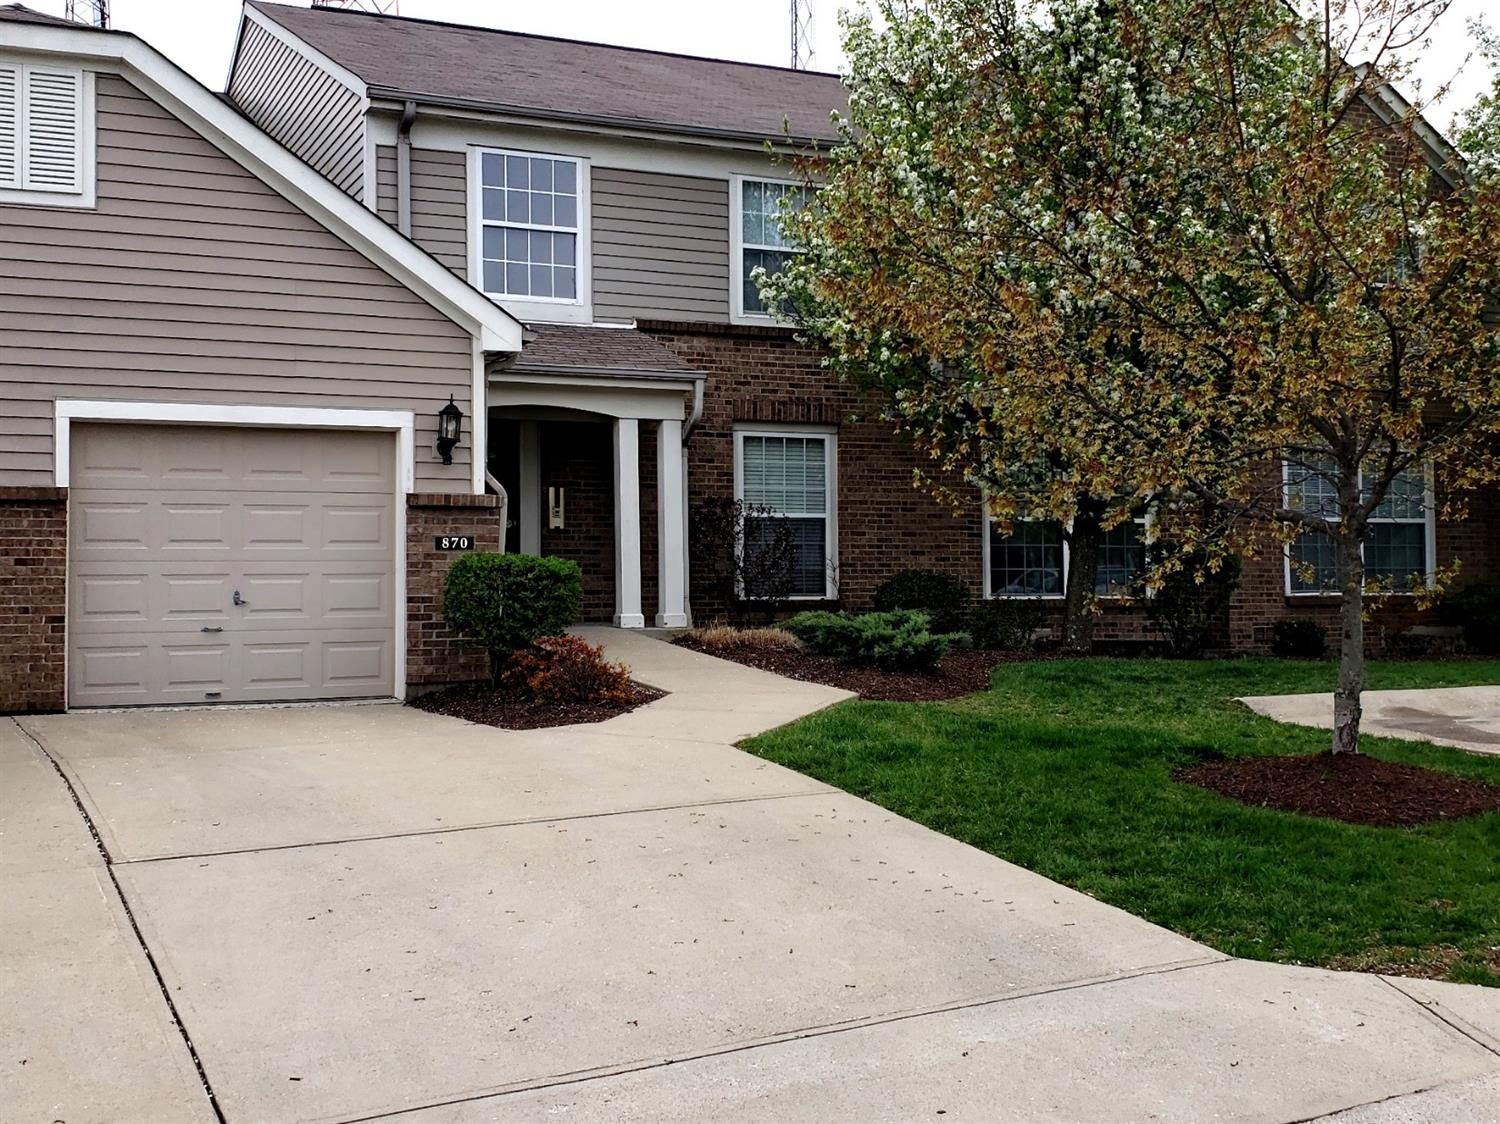 Property for sale at 870 Southmeadow Circle Unit: 102, Springfield Twp.,  Ohio 45224